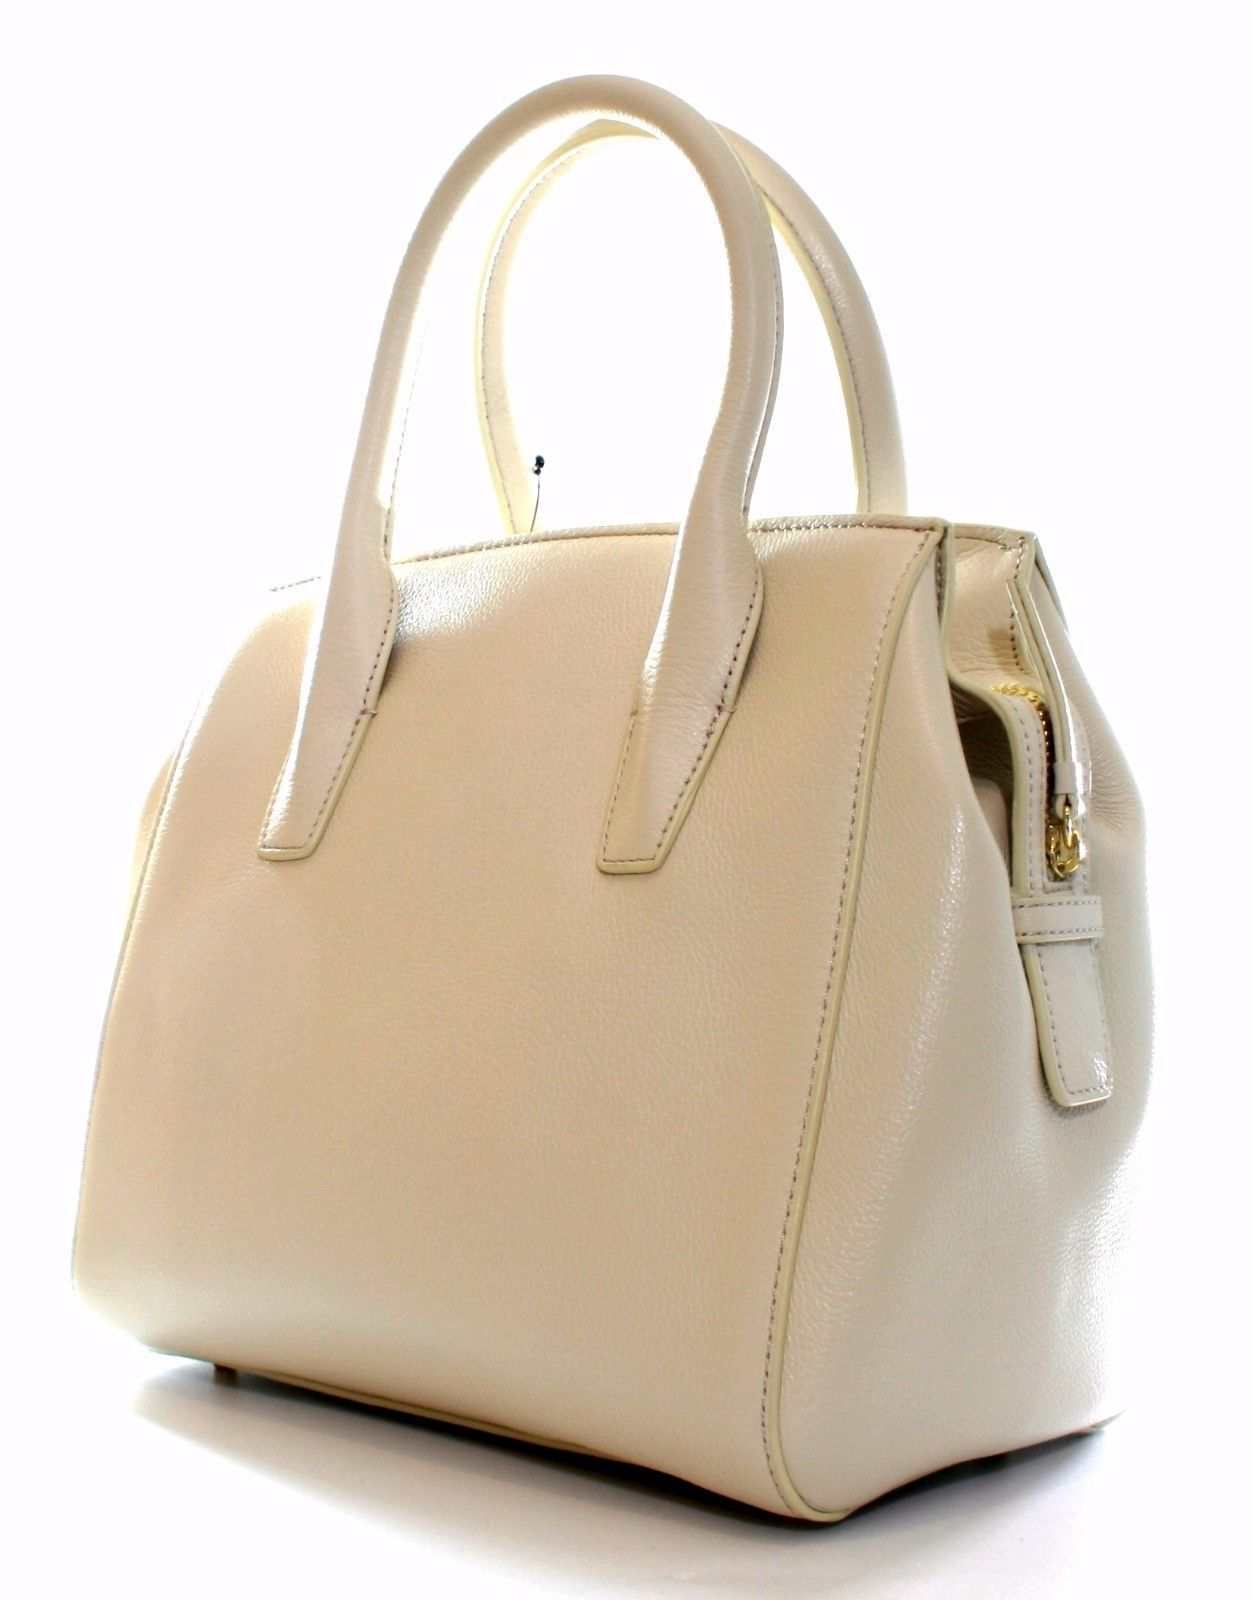 DKNY Donna Karan Sand Dollar Cream Leather Top Handle Bag Medium Handbag RRP£265